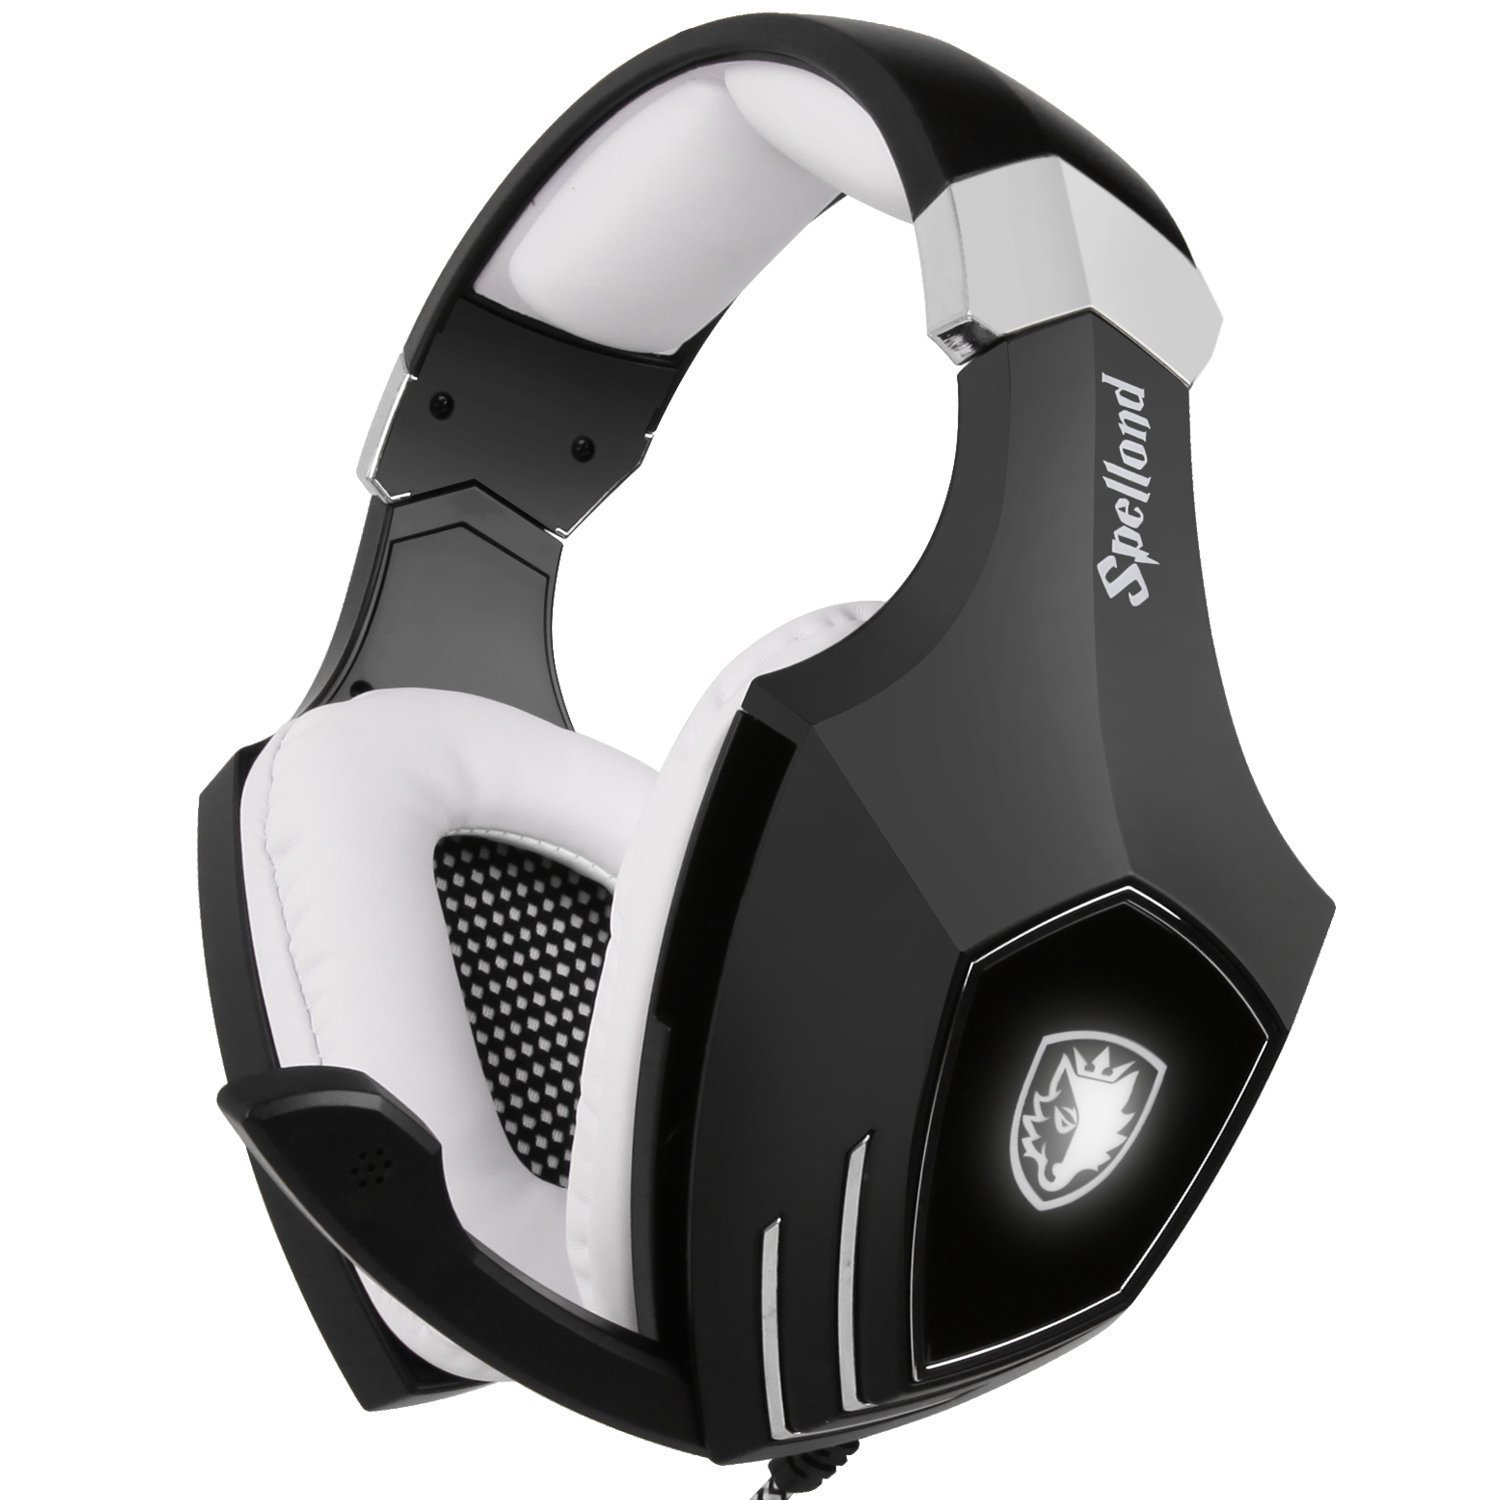 USB Gaming Headset-SADES A60/OMG Computer Over Ear Stereo Heaphones with Microphone Noise Isolating Volume Control LED Light (Black+White) for PC & MAC by SADES